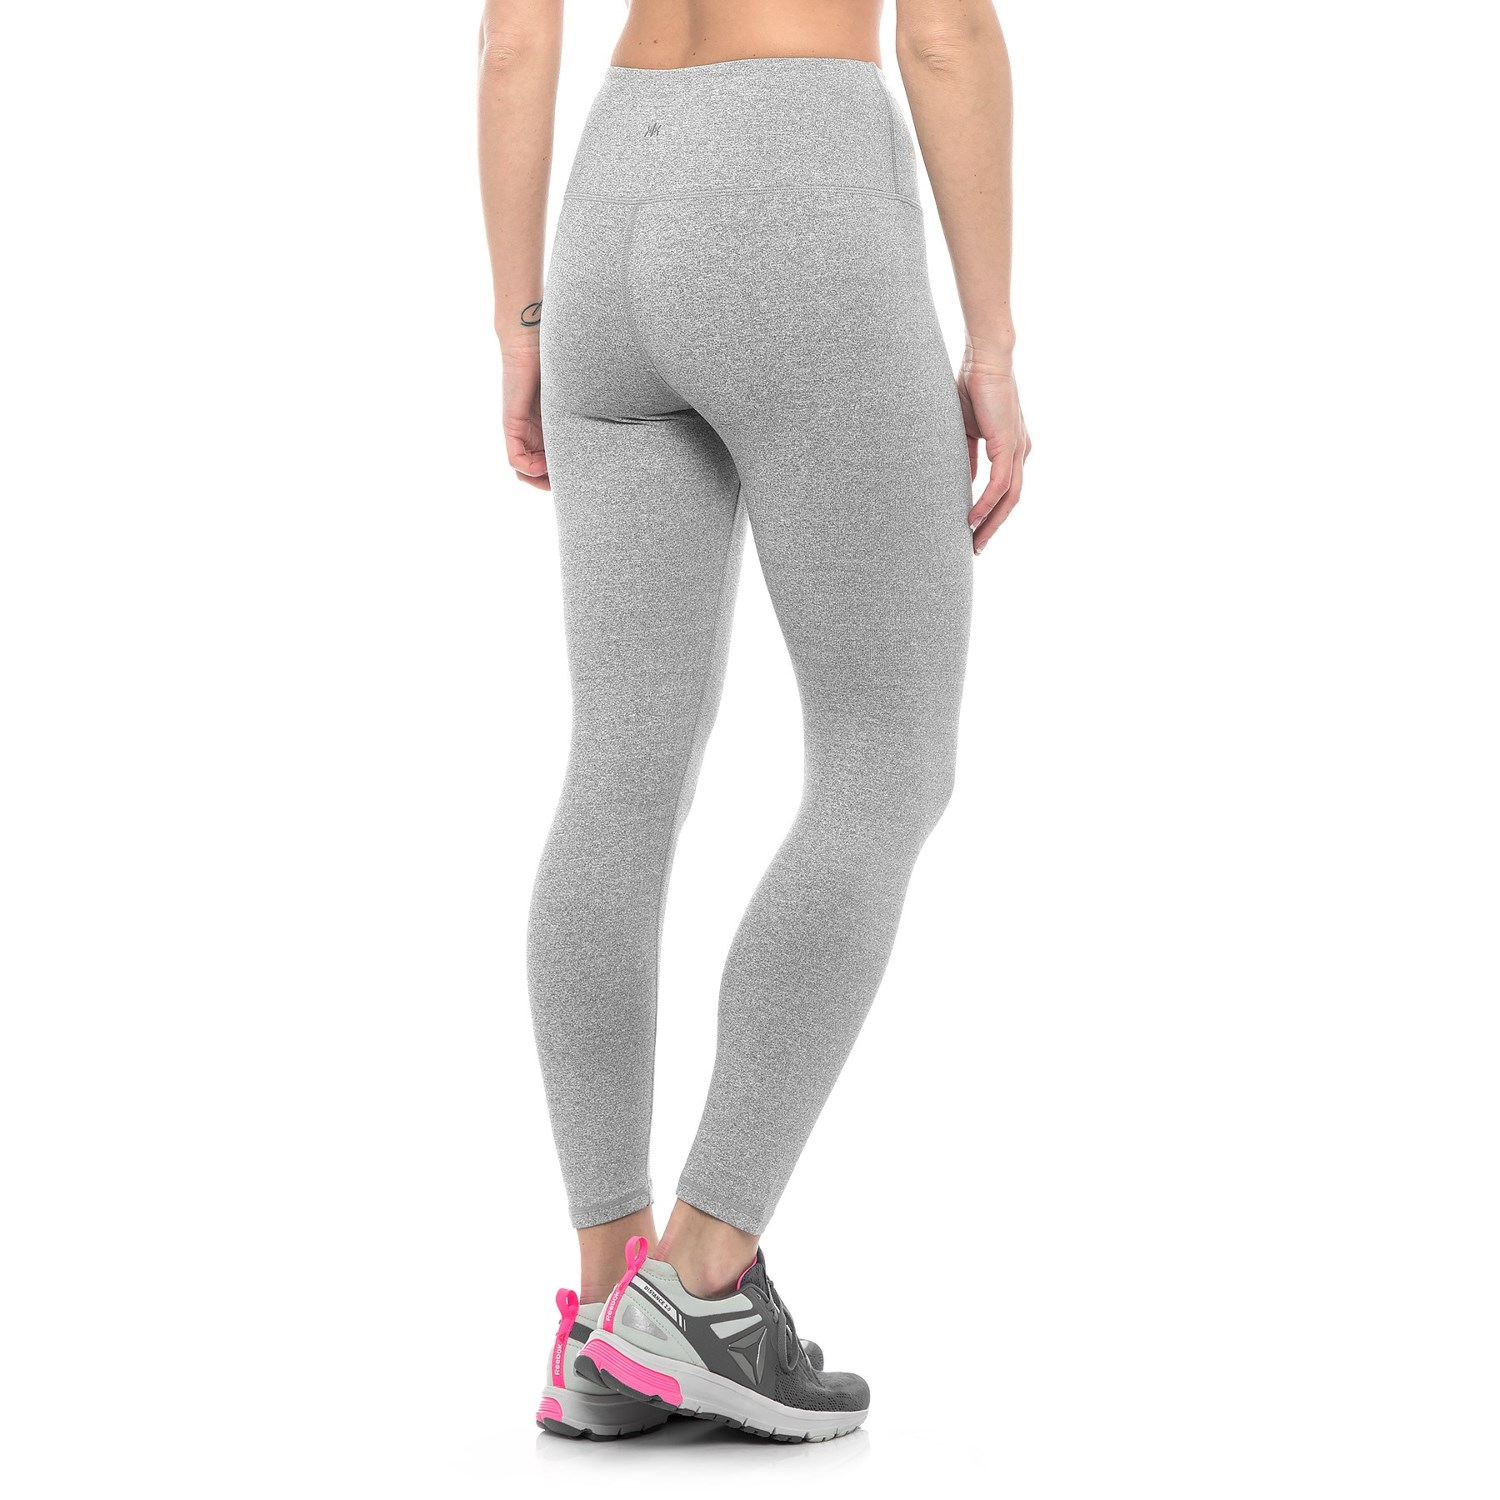 1bd7fa5927a433 Kyodan High-Waisted Leggings (For Women) - Save 42%